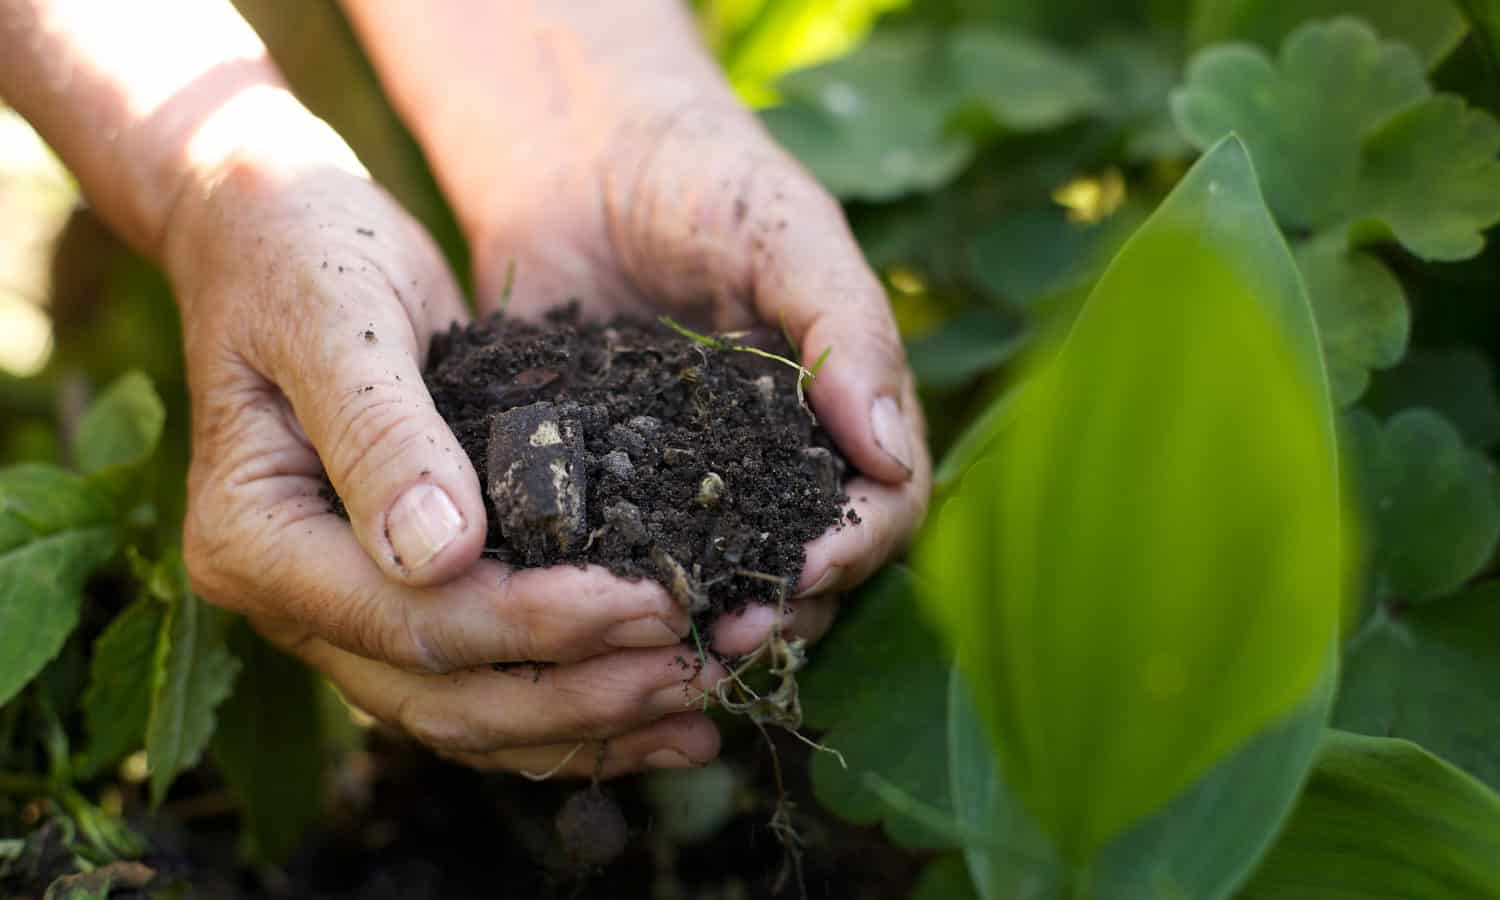 Healthy soil and regenerative farming are the solutions to climate change and human health issues.